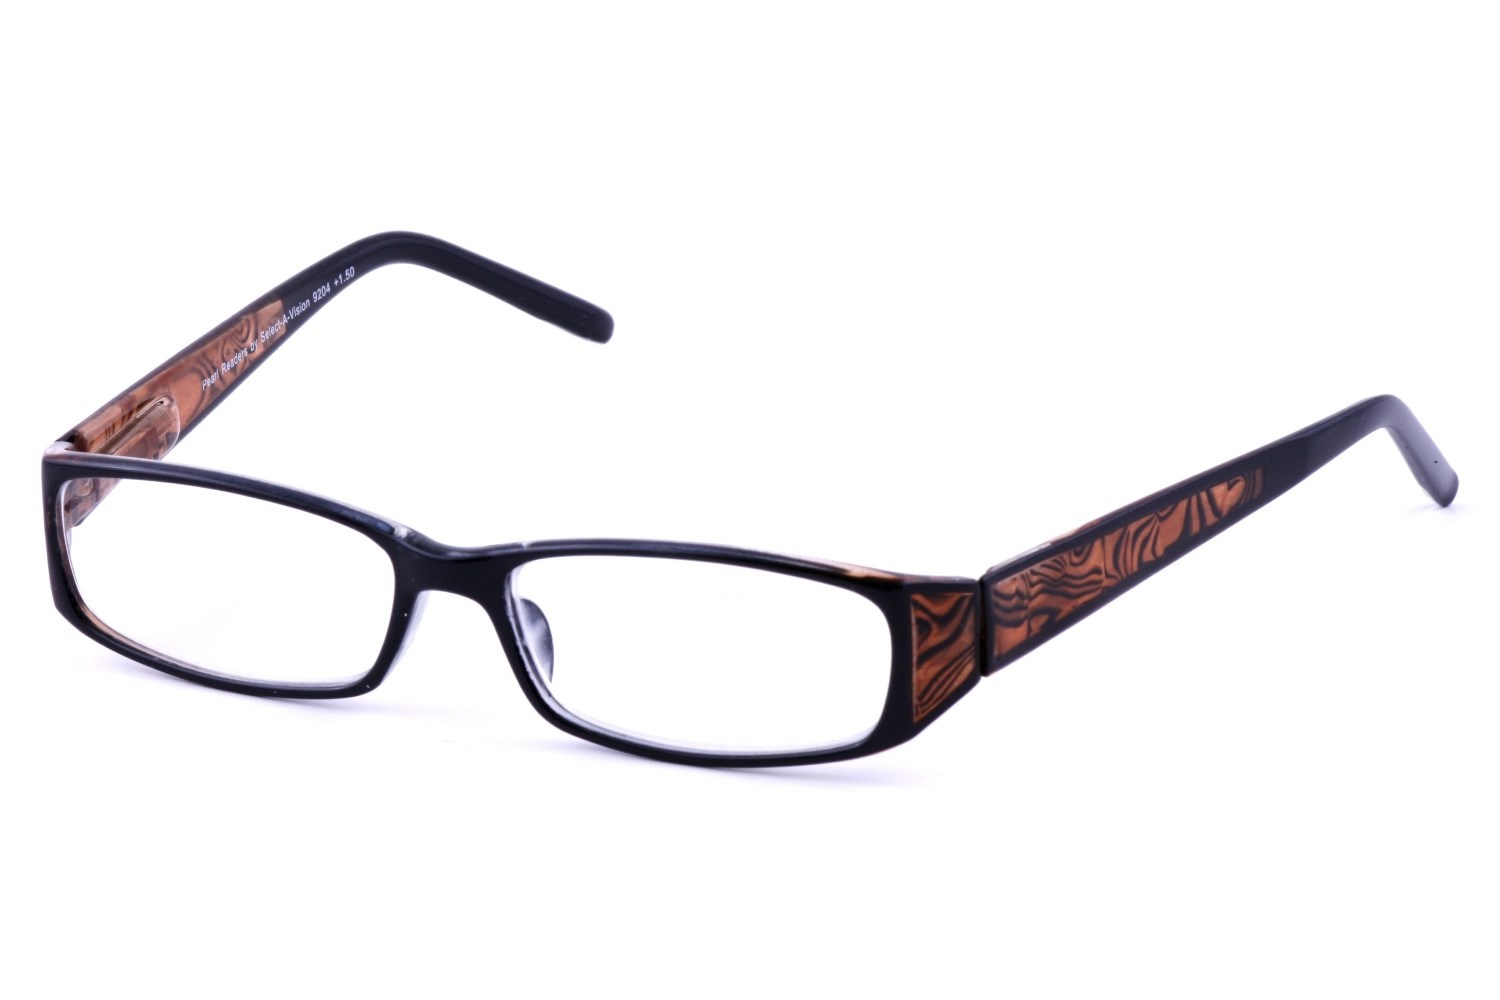 Eyeglass Frames With Pearls : Dynamic Labs Pearl Reading Glasses - BostonXOContactLenses